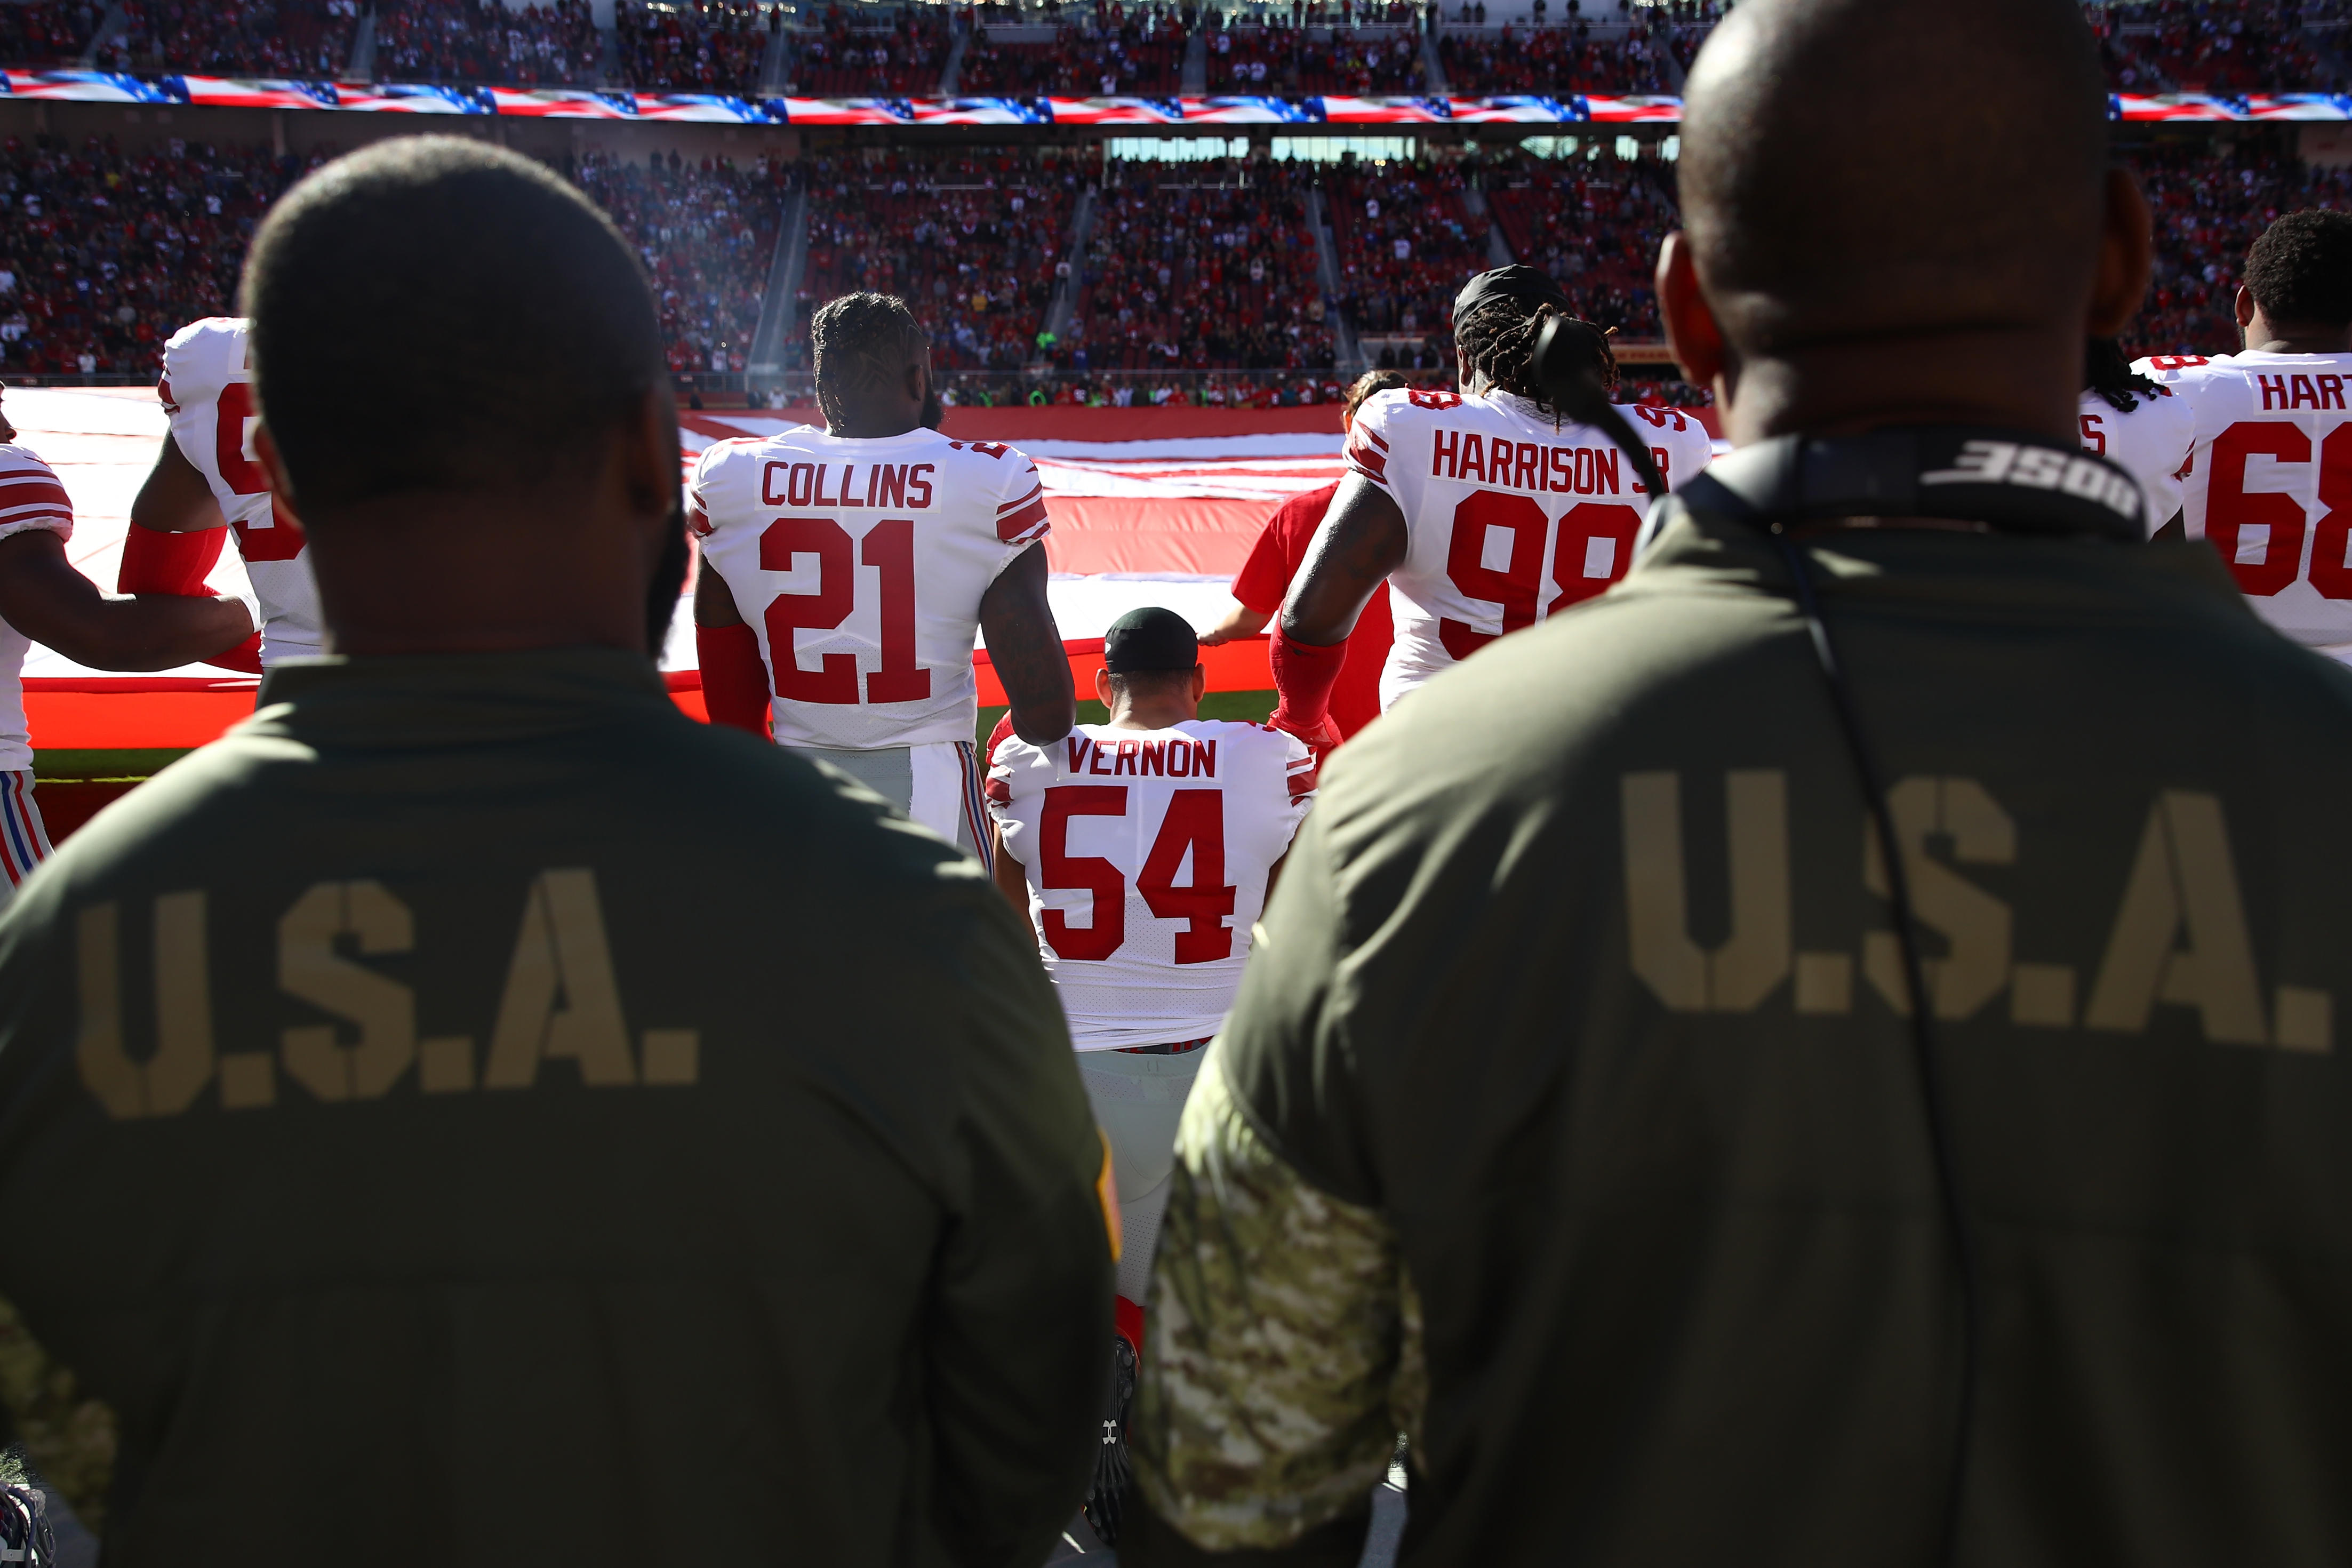 A New York Giants player kneels during the national anthem last November.